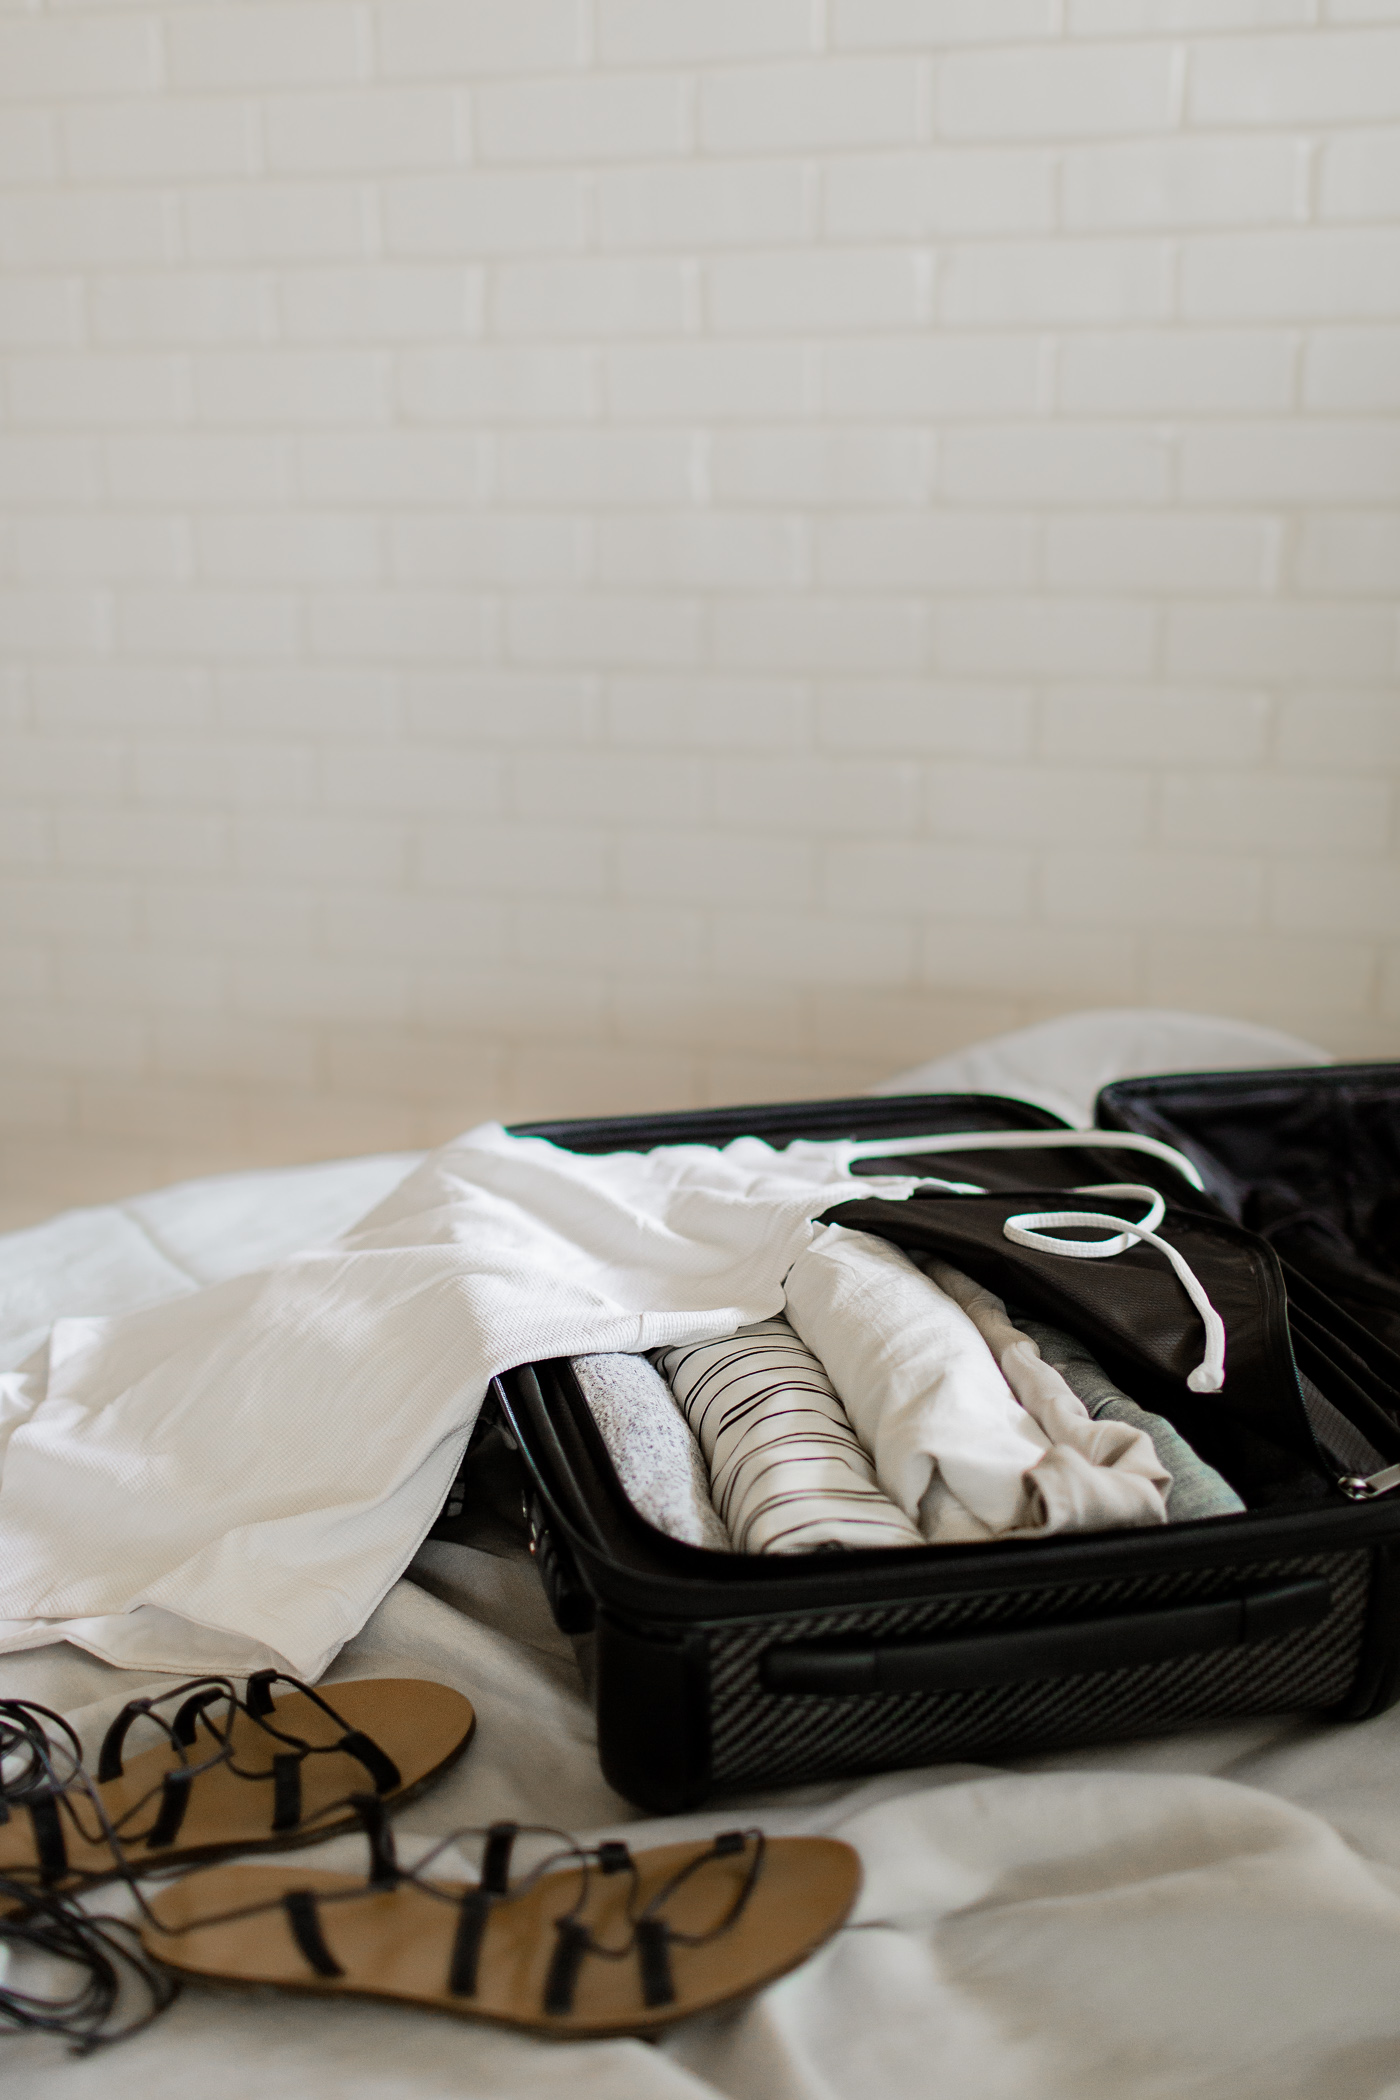 5 easy tips for how to make extra room in your suitcase, for your flight home or souvenirs, or just to pack a few necessities.